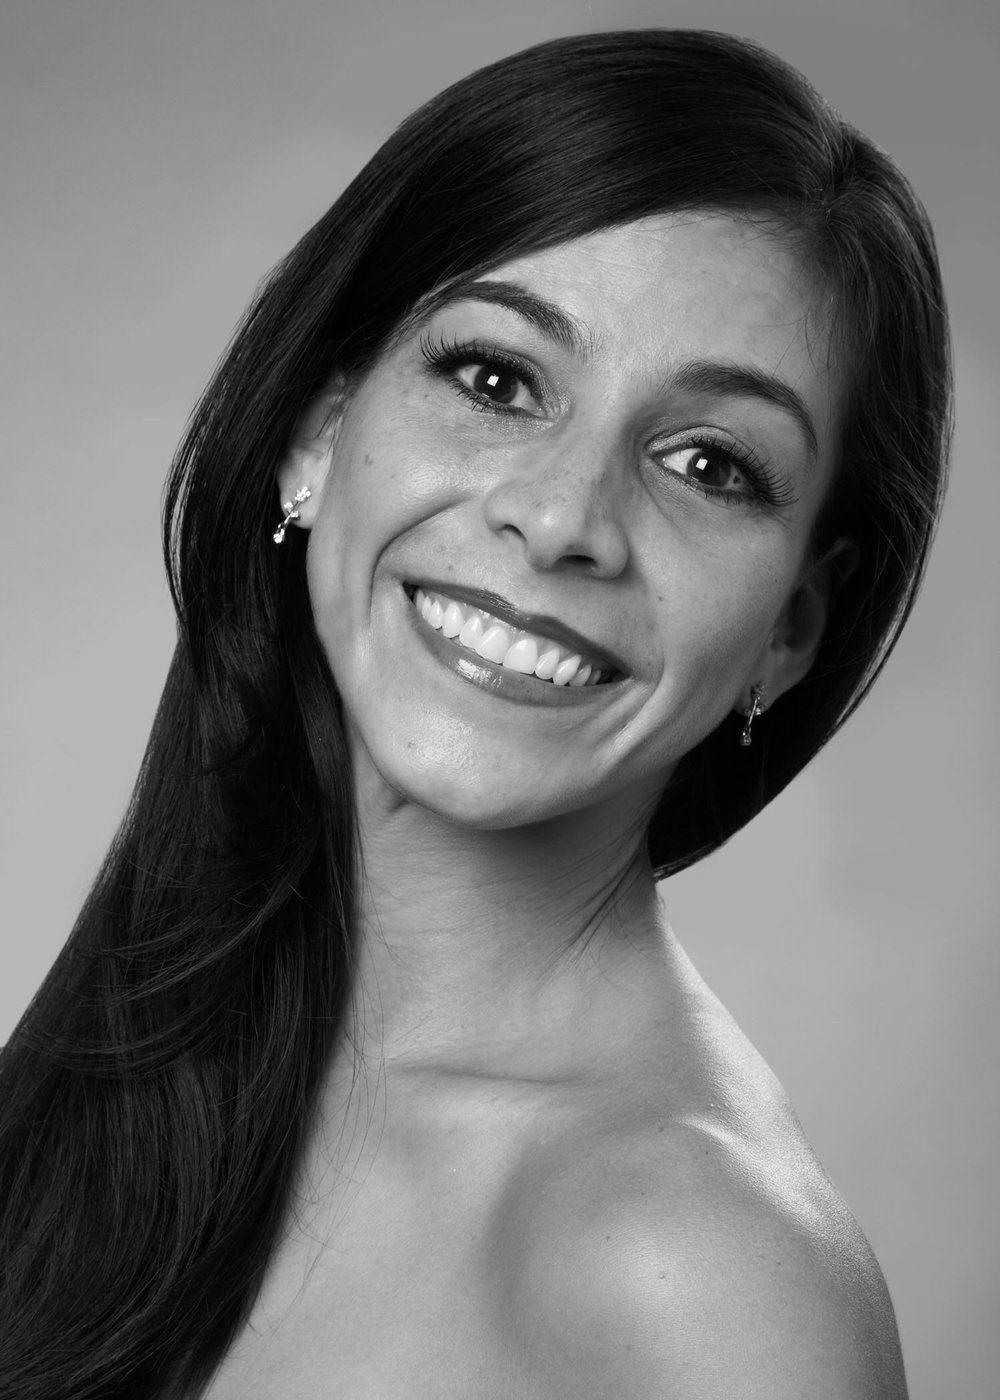 Yumelia Garcia - After retiring from Joffrey Ballet in 2014 Yumelia Garcia has not let the grass grow under her feet. While she is currently pursuing a bachelor's degree in Communication at the University of Wisconsin-Milwaukee, she also continues to make guest performances around the country from Florida to Alaska. In 2015 Gordon Pierce Schmidt created the ballet Day of the Gypsy on Ms. Garcia. It was performed at the Harris Theater in Chicago, and was among the Chicago Tribune's best performances in 2015. She has been the guest principal dancer for the Jacksonville Symphony in Sleeping Beauty, Nutcracker and is slated to perform Cinderella next April. She has recently worked in New York with the Kathryn Posin Dance Company collaborating with Meredith Monk in a commissioned ballet for the Harkness Dance Festival in Manhattan. She also is part of Joffrey Ballet's teaching workshop in San Antonio, TX and teaches and coaches for a number of schools from Buffalo, NY to Los Angeles, CA.Ms. Garcia was born in Caracas, Venezuela, where she received her professional training at the Escuela de Ballet Gustavo Franklin (Vaganova school). Upon graduating with honors, Vicente Nebrada invited her to join the National Ballet of Caracas at the tender age of 15, and promoted her to soloist one year later. Ms. Garcia began her U.S. career with Heinz Pohl at Ohio Ballet. She then joined the Milwaukee Ballet, performing as a principal dancer. While in Milwaukee, in addition to having Kathryn Posin's Scheherazade created for her, Ms. Garcia performed many classical roles, including Kitri in Don Quijote, Giselle, Juliet in Romeo and Juliet, Aurora in Sleeping Beauty, and Carmen. She later moved on to Ballet Florida, where she was featured in contemporary and classical works, most recently as Cleopatra, by Ben Stevenson. In 2009, Ms. Garcia was invited by Ashley Wheater to join the Joffrey Ballet of Chicago, where she hit the stage to critical acclaim in roles such as Valencienne in The 